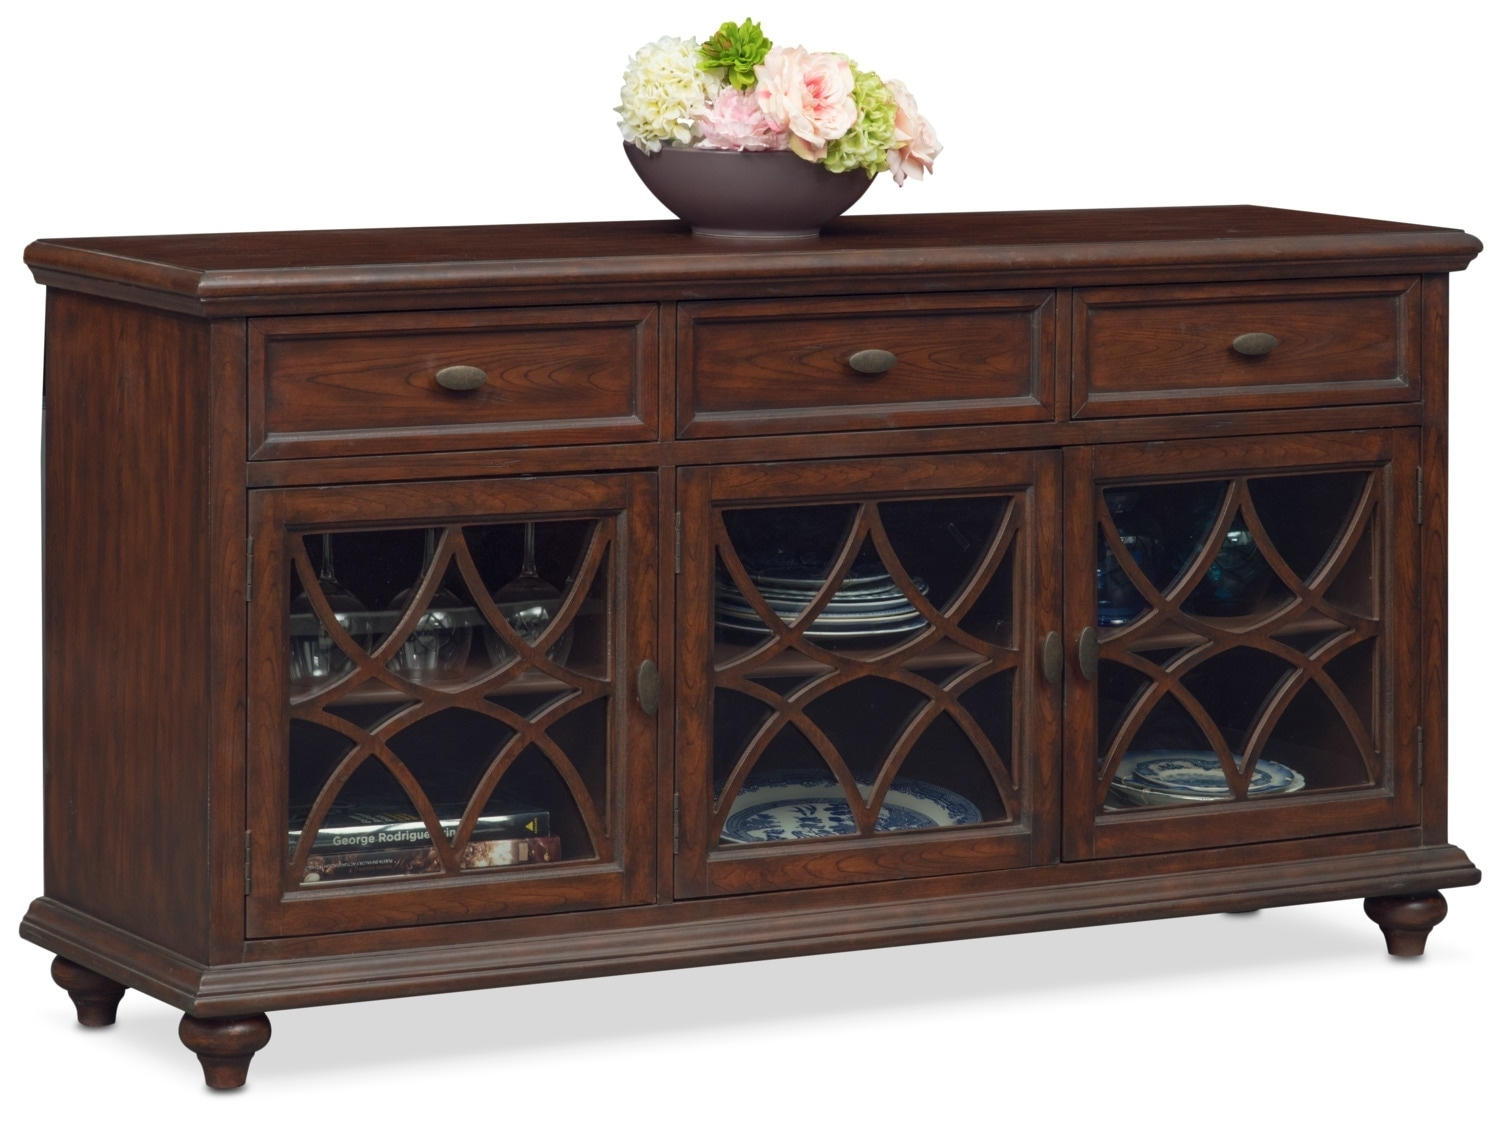 Rivoli Sideboard - Brown | Value City Furniture And Mattresses intended for Diamond Circle Sideboards (Image 20 of 30)